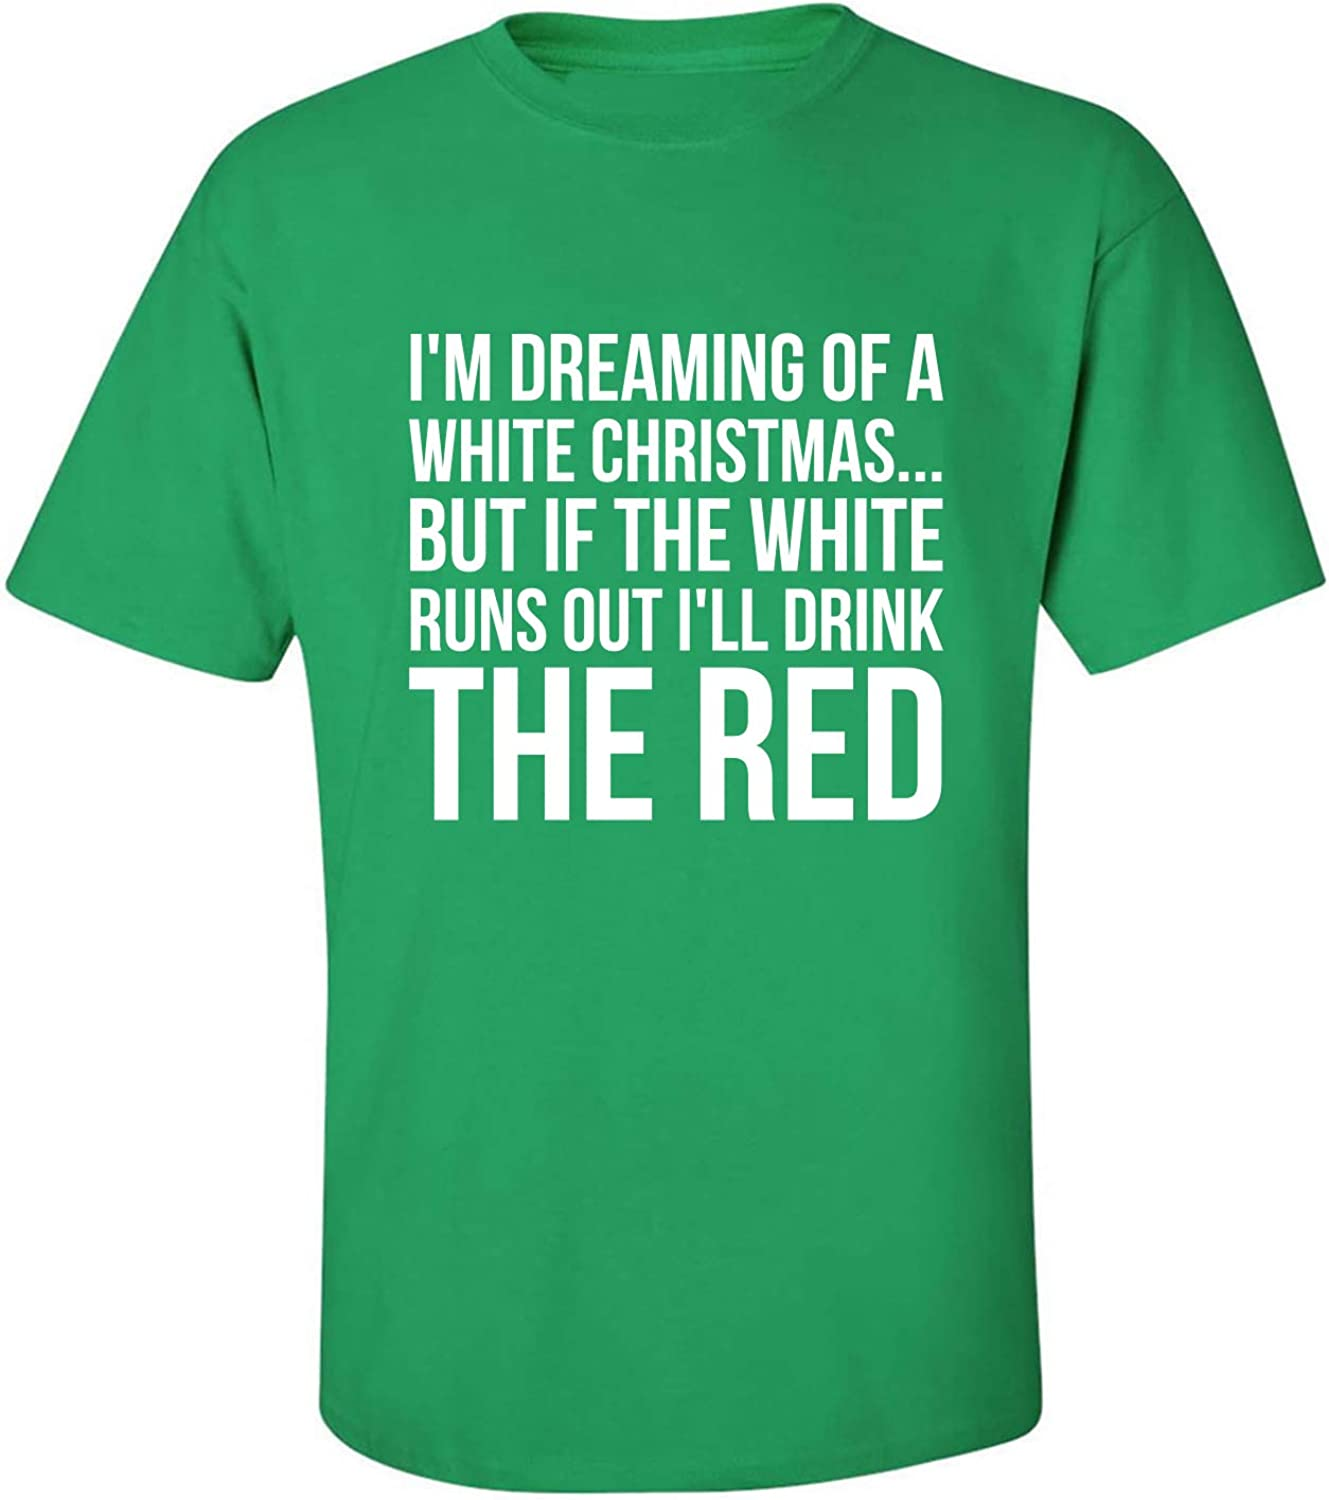 I'm Dreaming of A White Christmas Adult T-Shirt in Kelly Green - XXXXX-Large